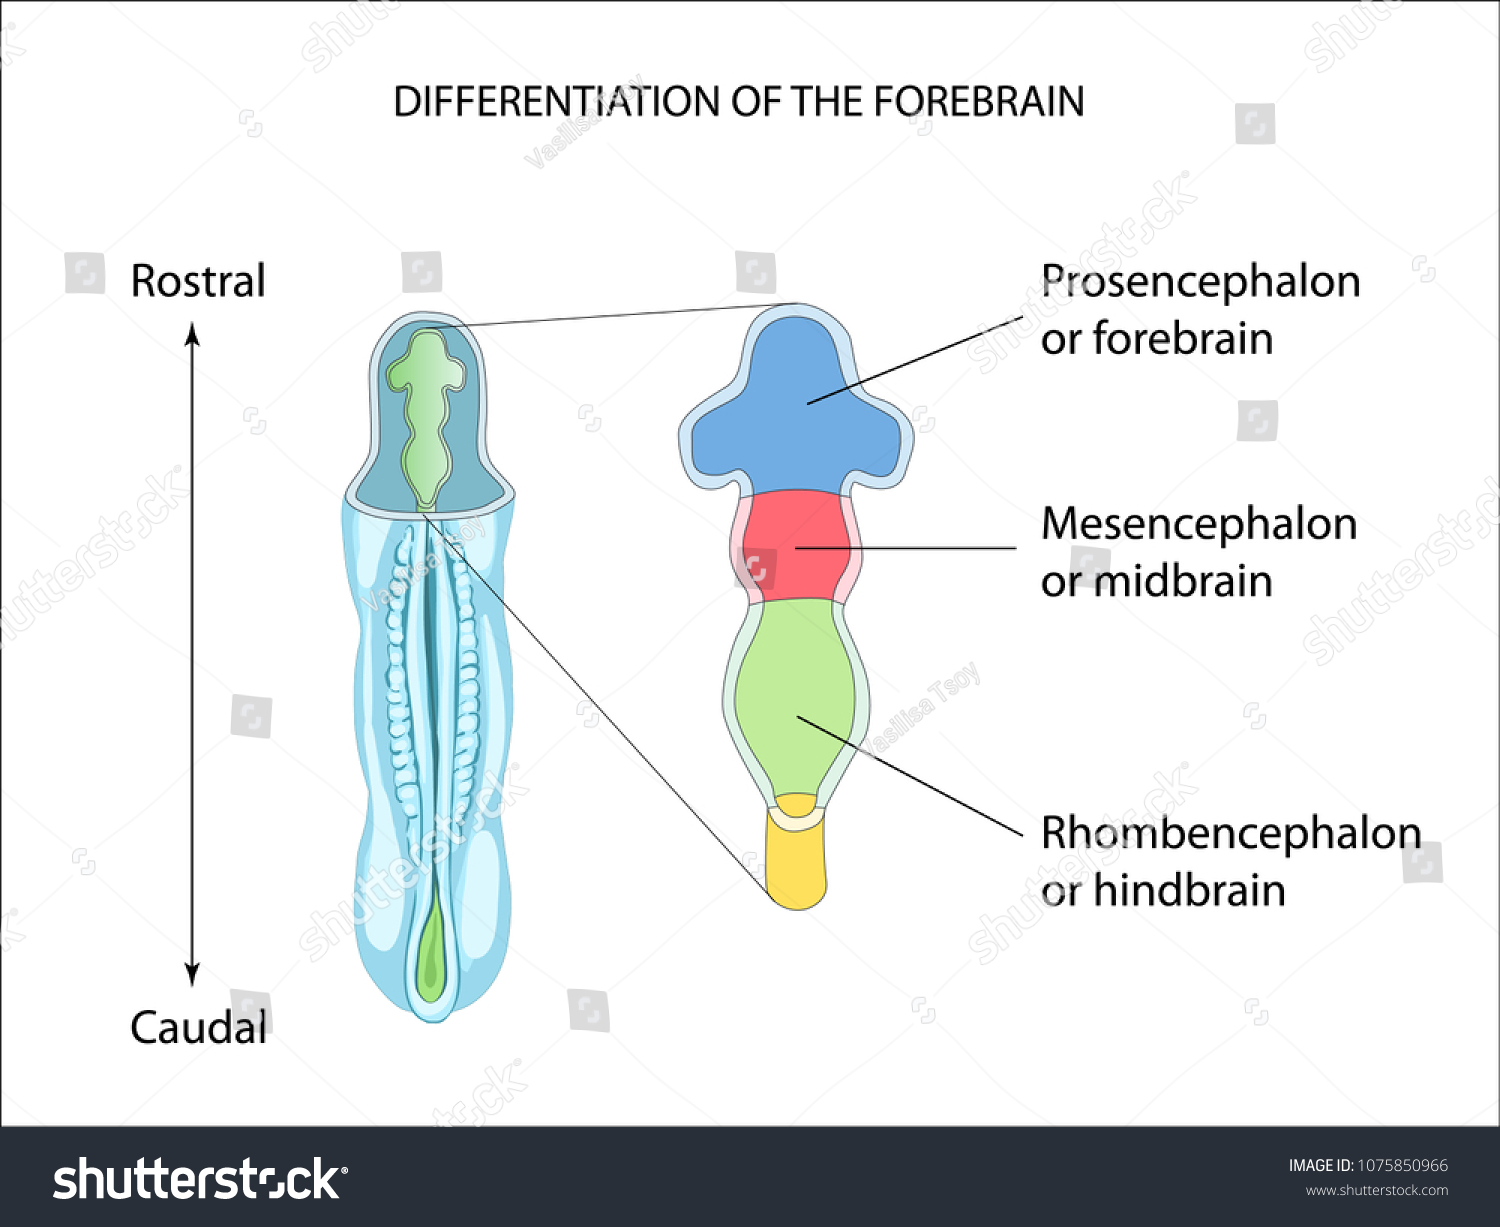 Differentiation Forebrain Neural Tube Formation Anatomy Stock Vector ...